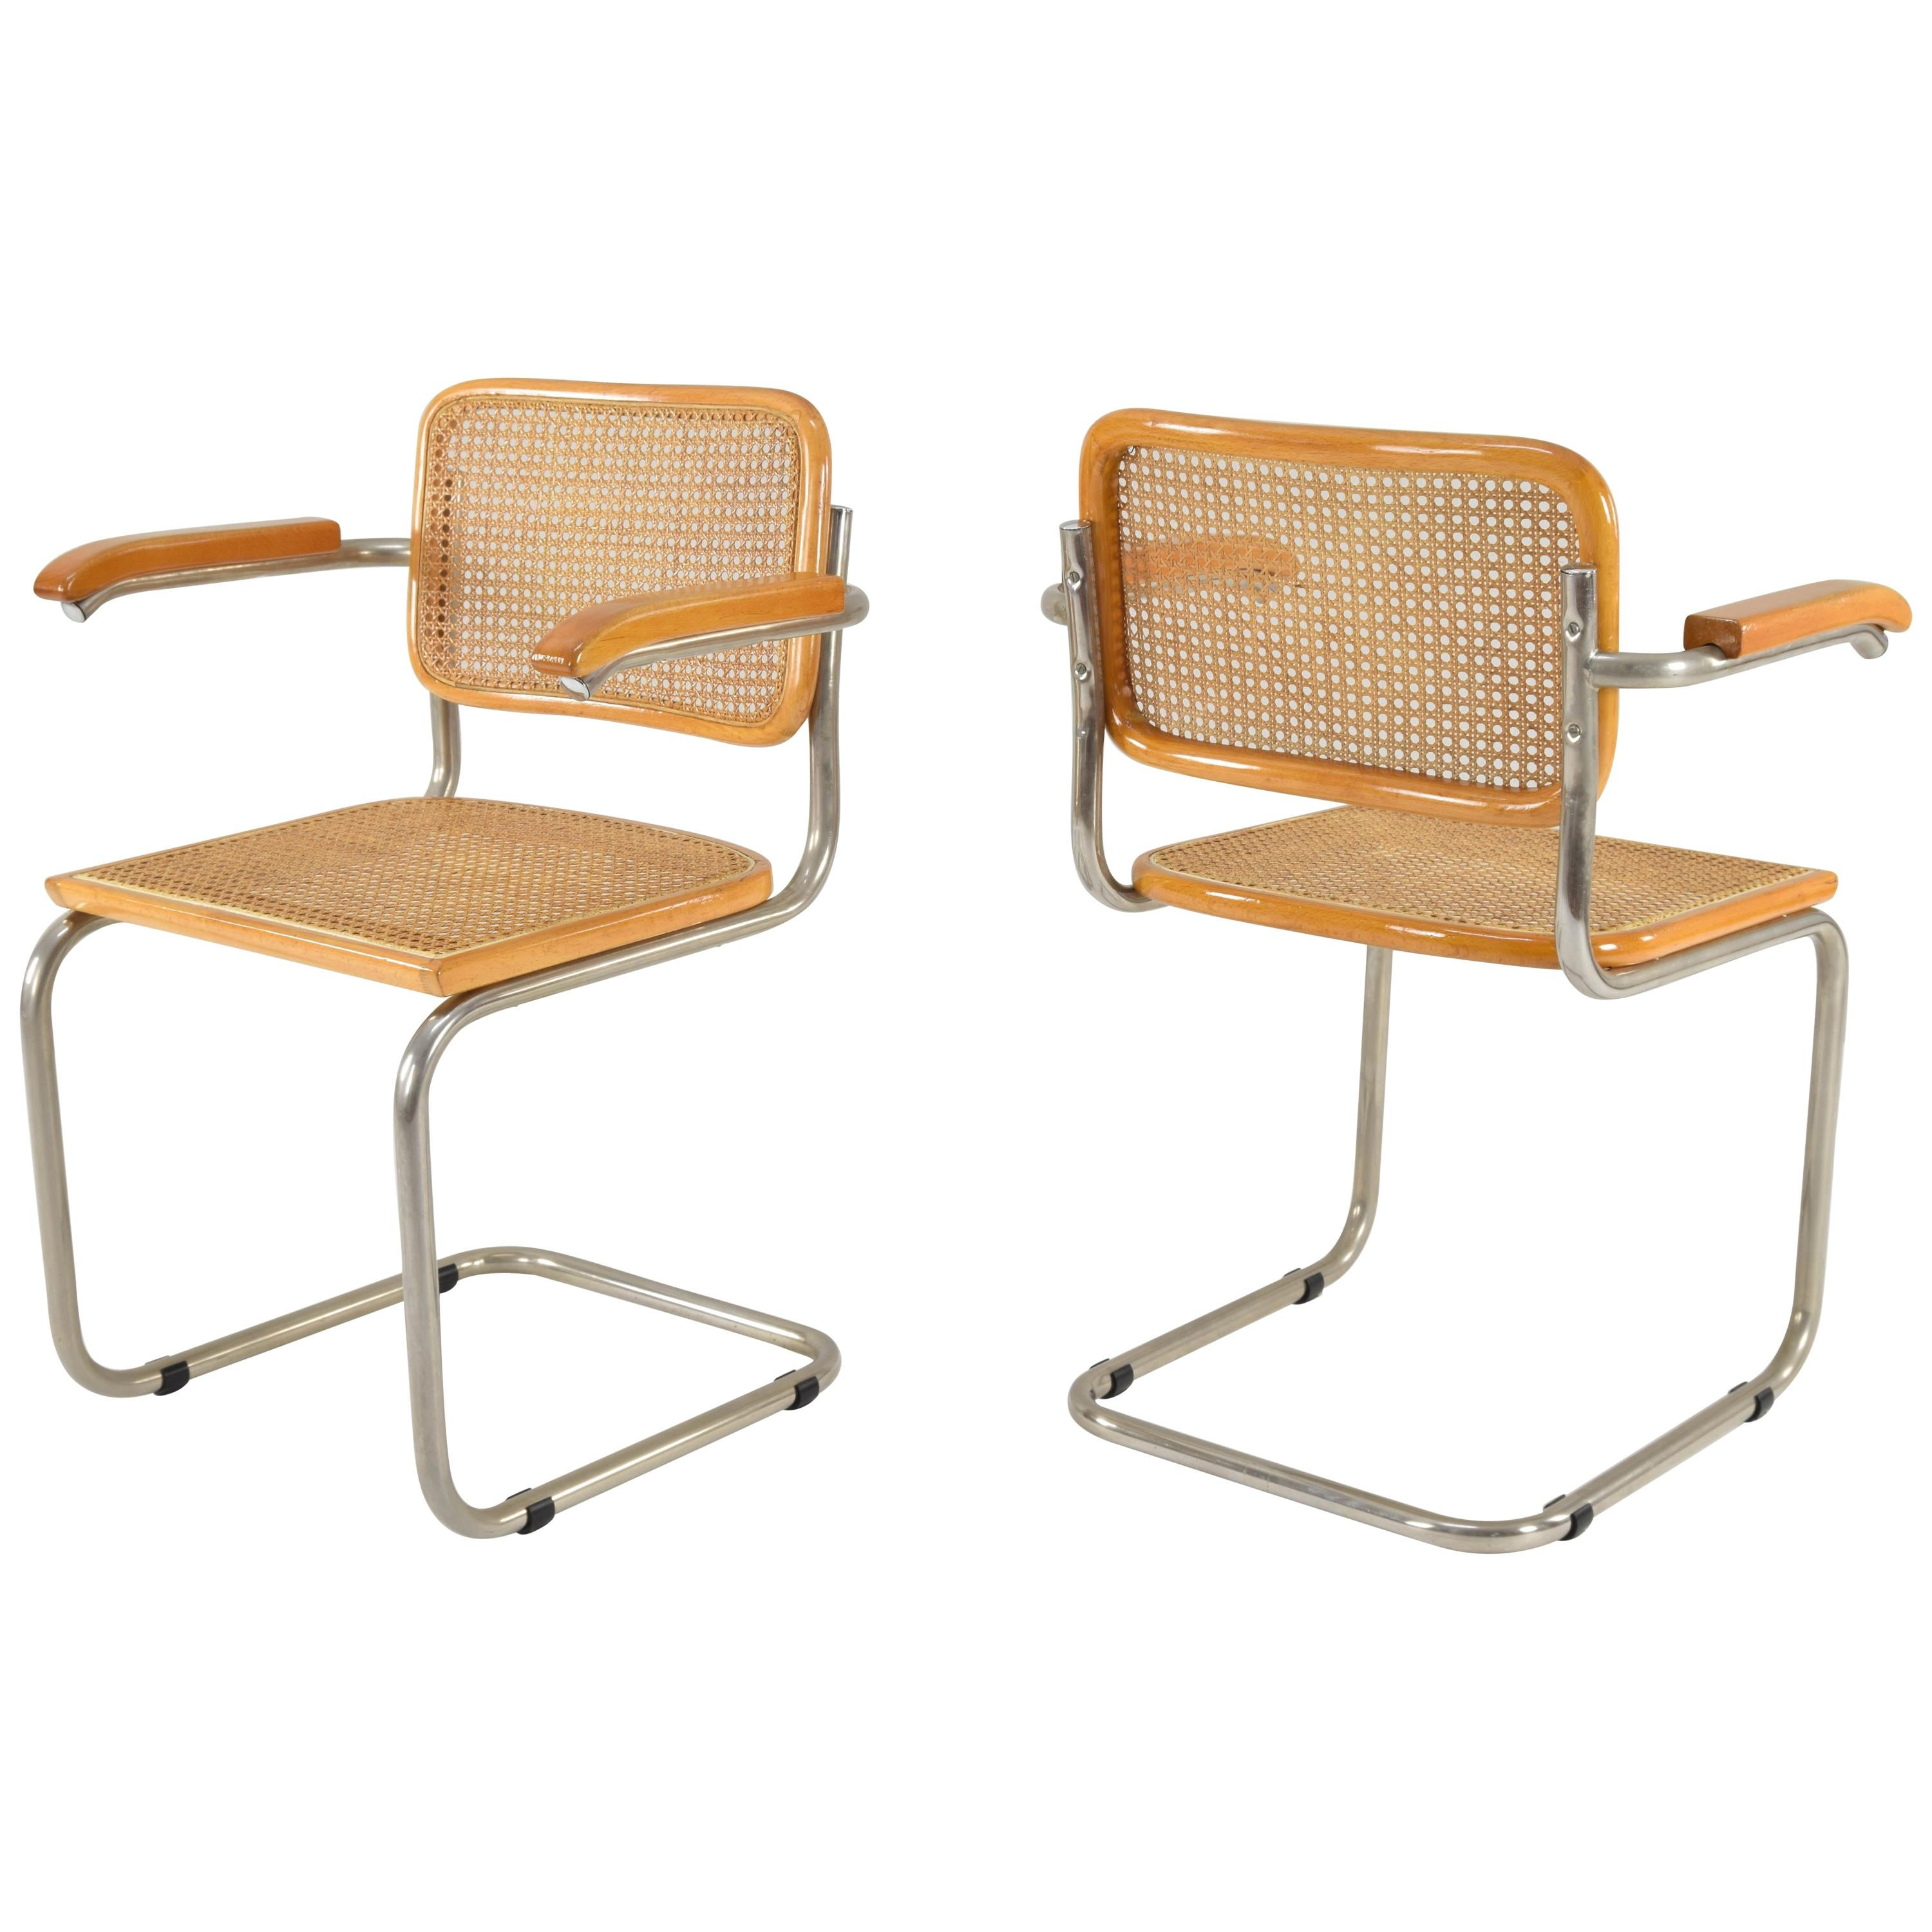 Set of Two Mid-Century Modern Marcel Breuer B64 Cesca Chairs, Italy, 1970